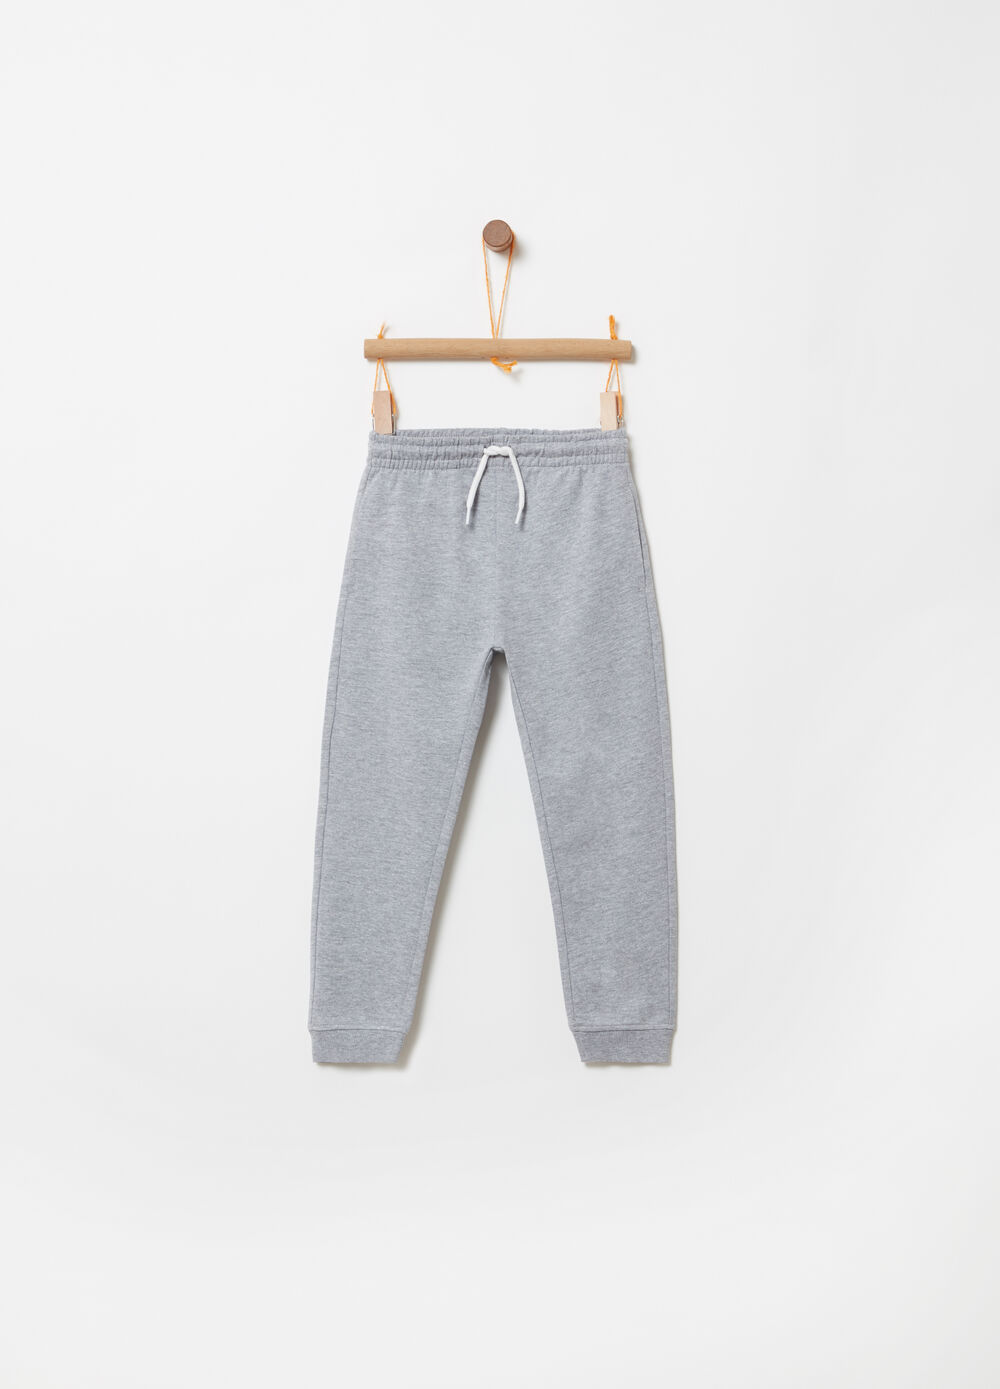 Biocotton trousers with functional pockets